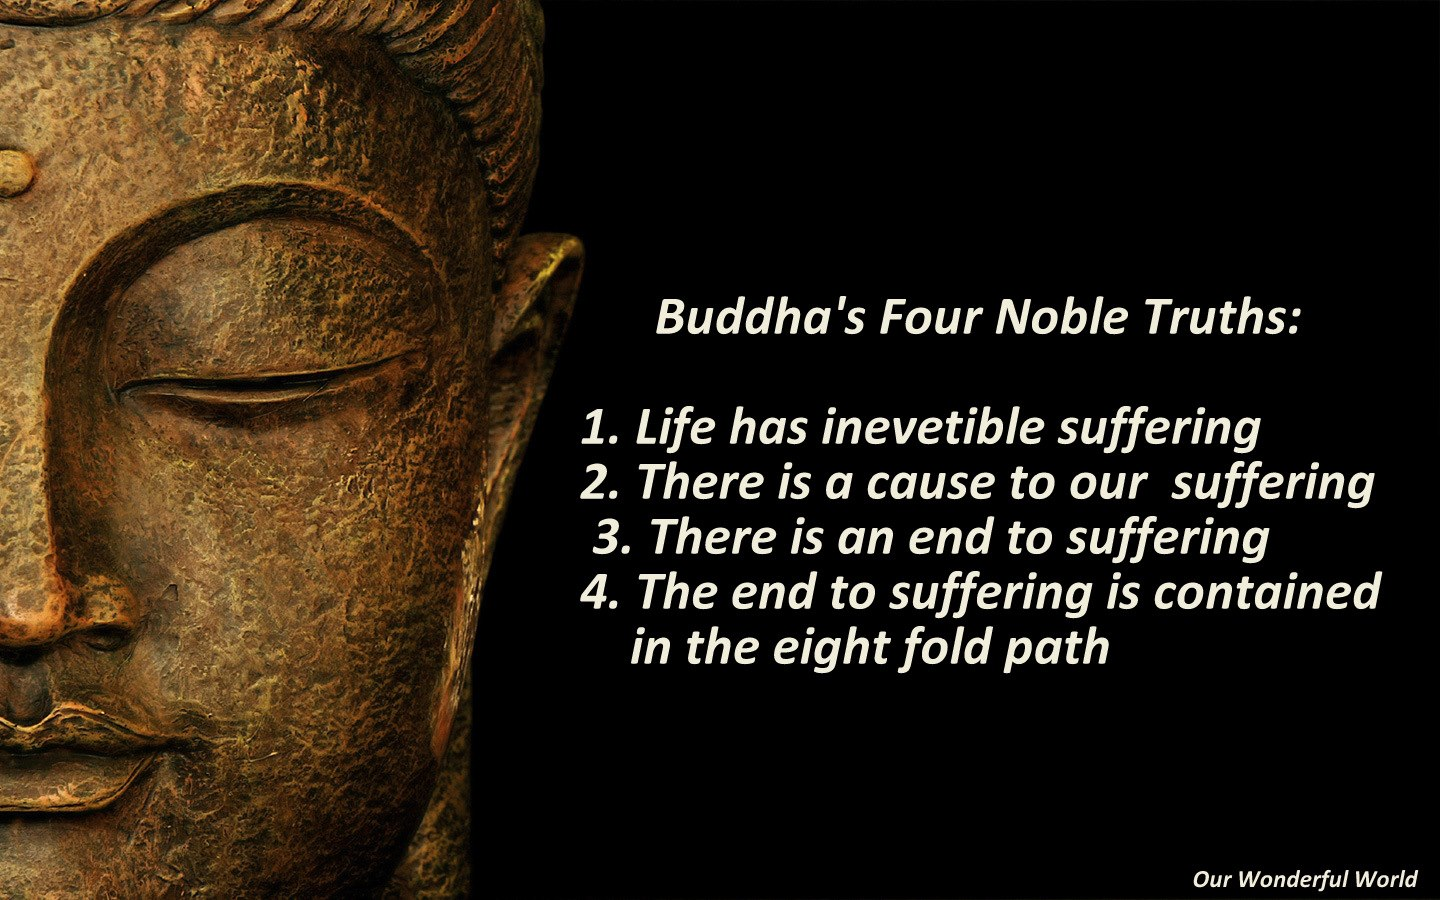 4noble_truths.jpg